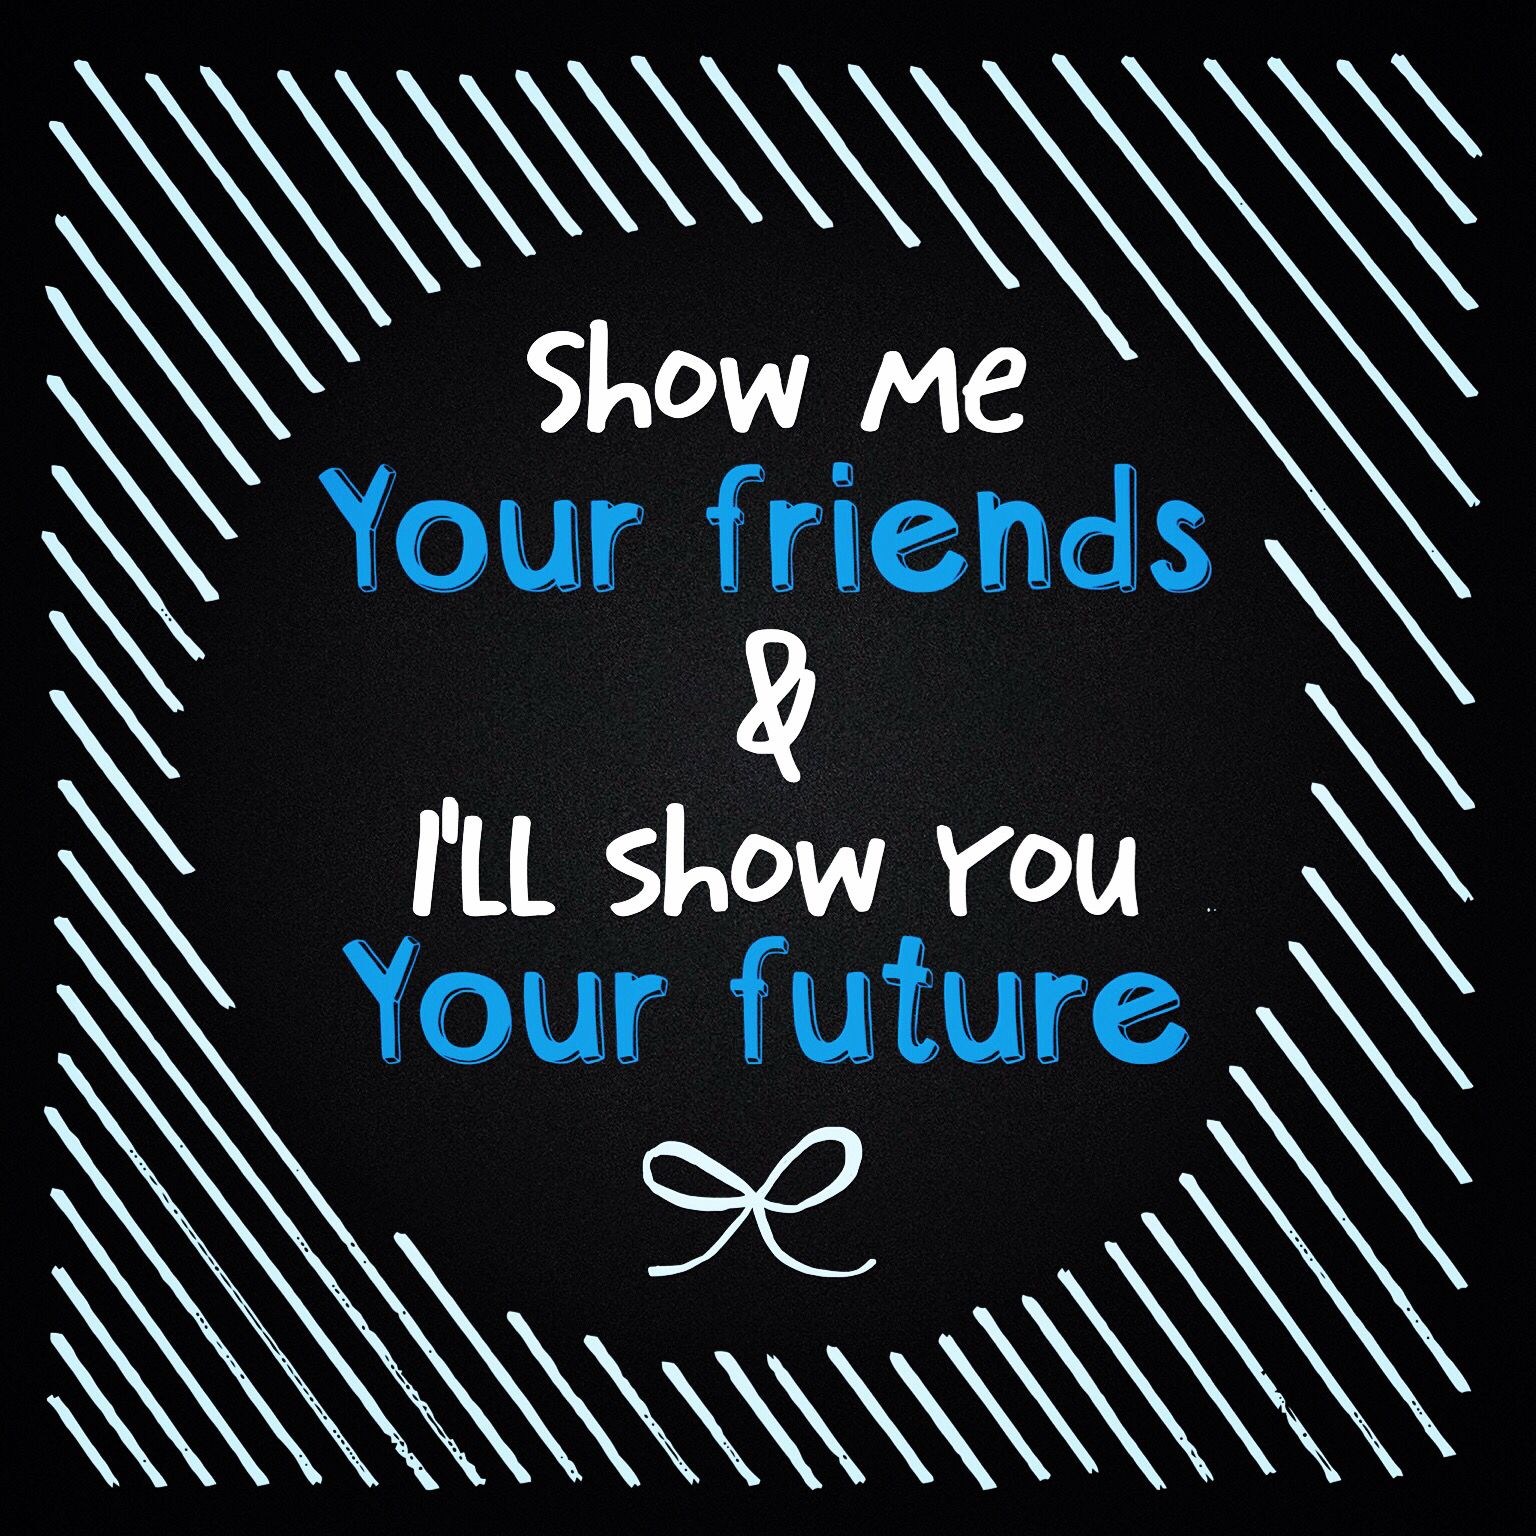 Show Me Your Friends And Ill Show You Your Future Quotes